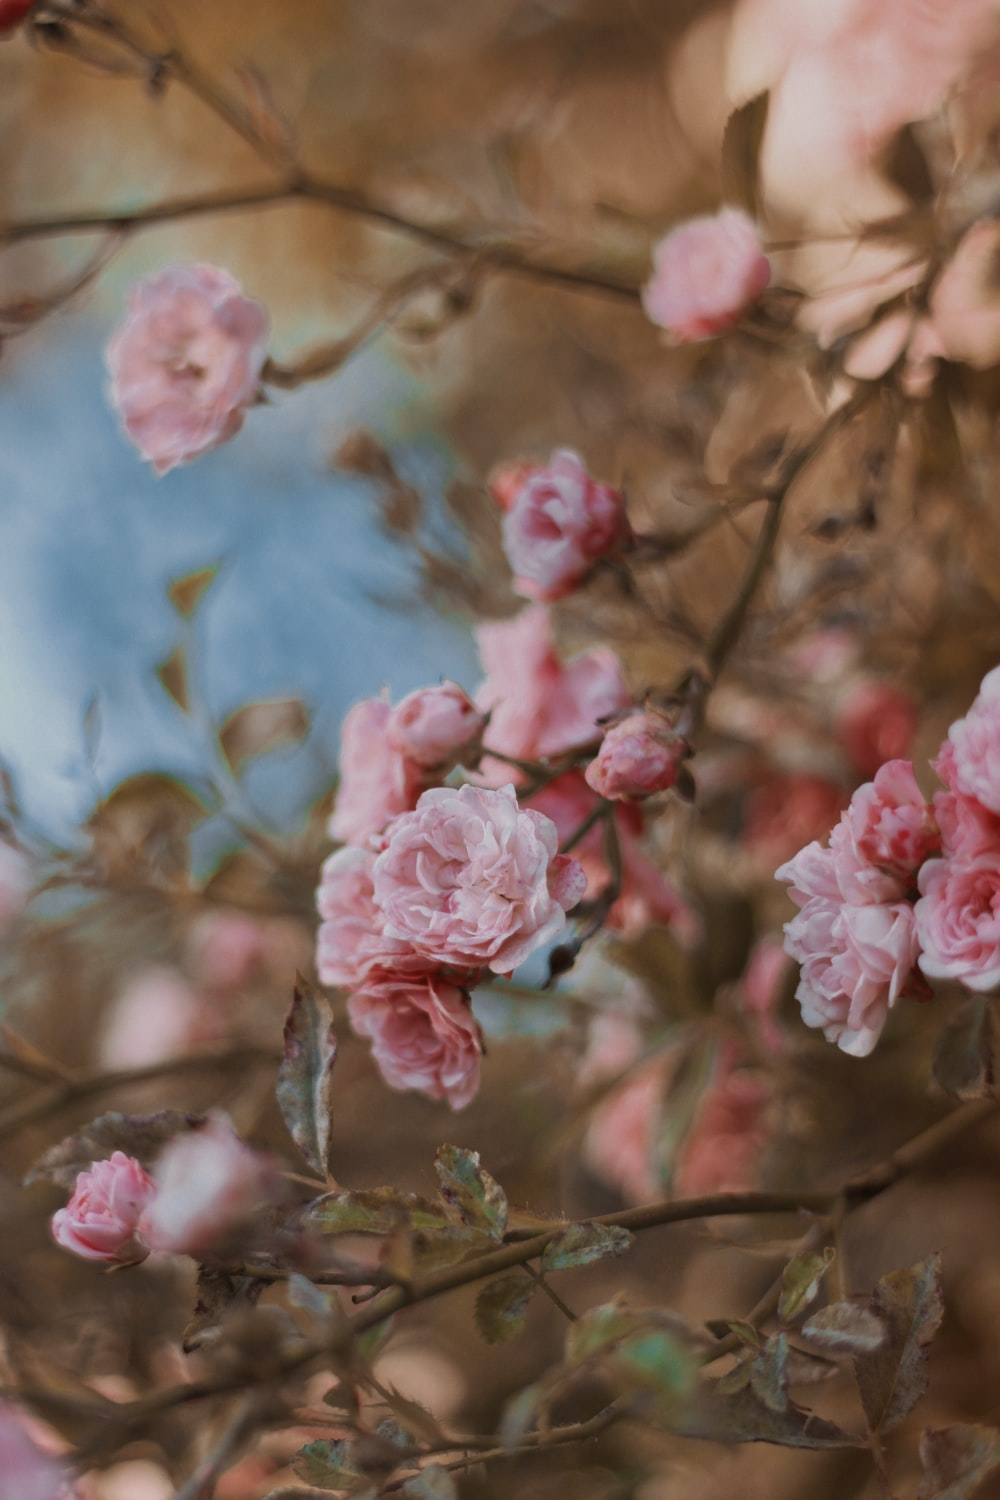 pink cherry blossom in close up photography